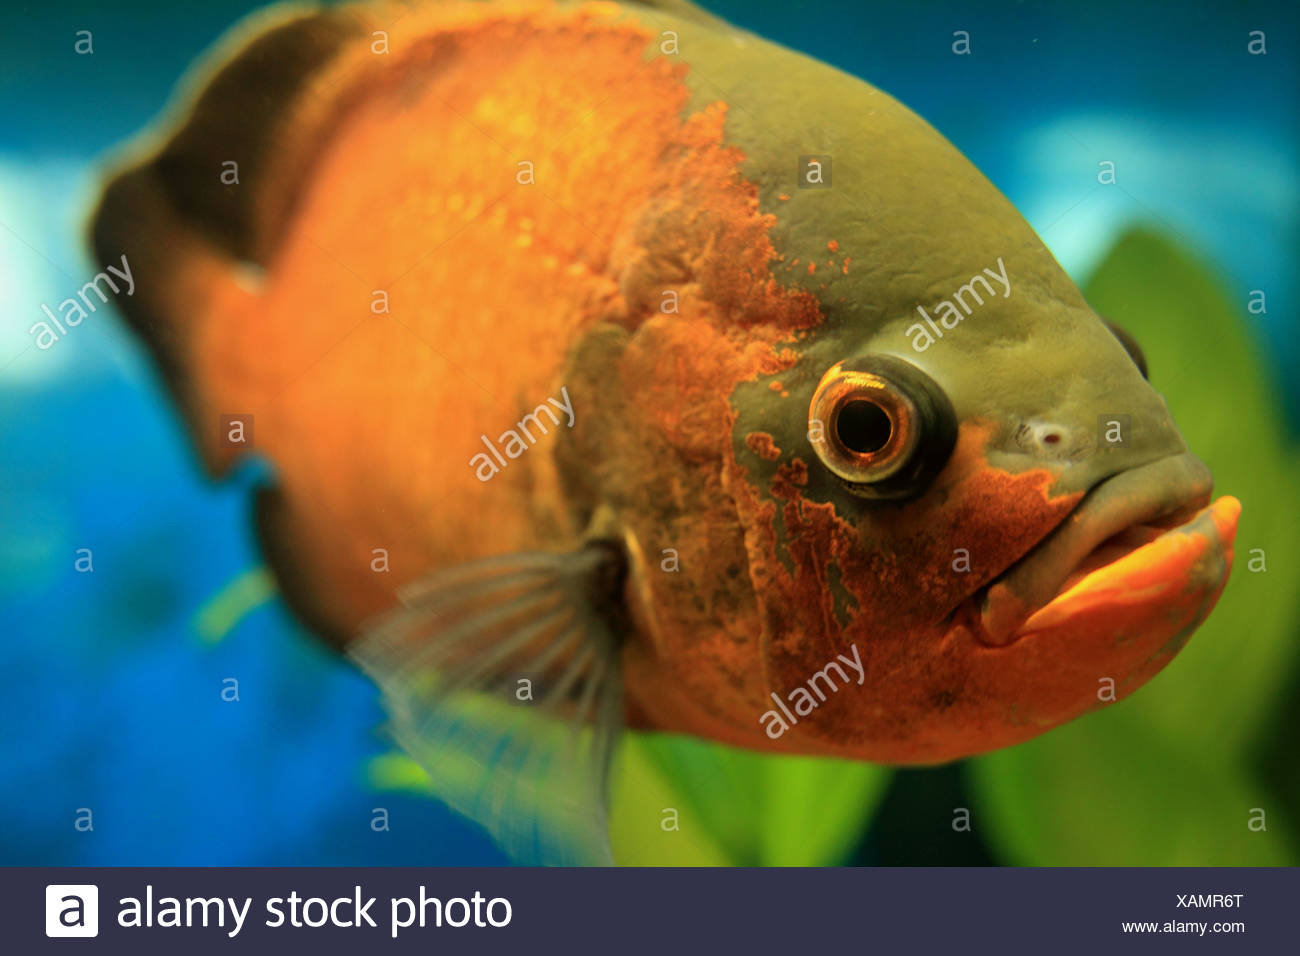 Adult oscar fish mine very